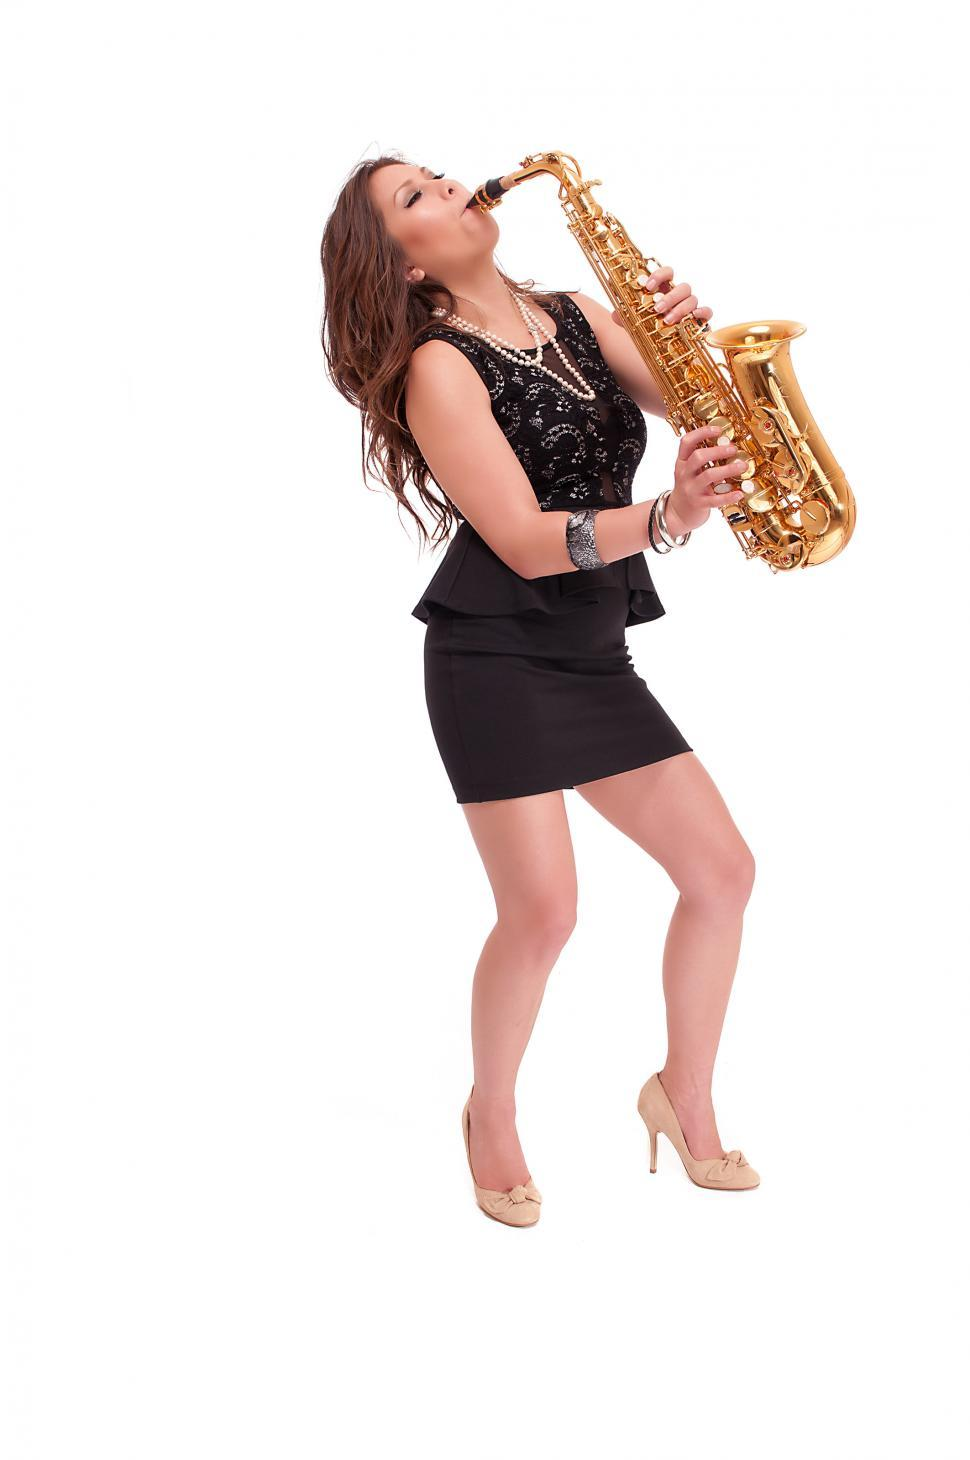 Download Free Stock HD Photo of Young woman in heels playing the saxophone Online